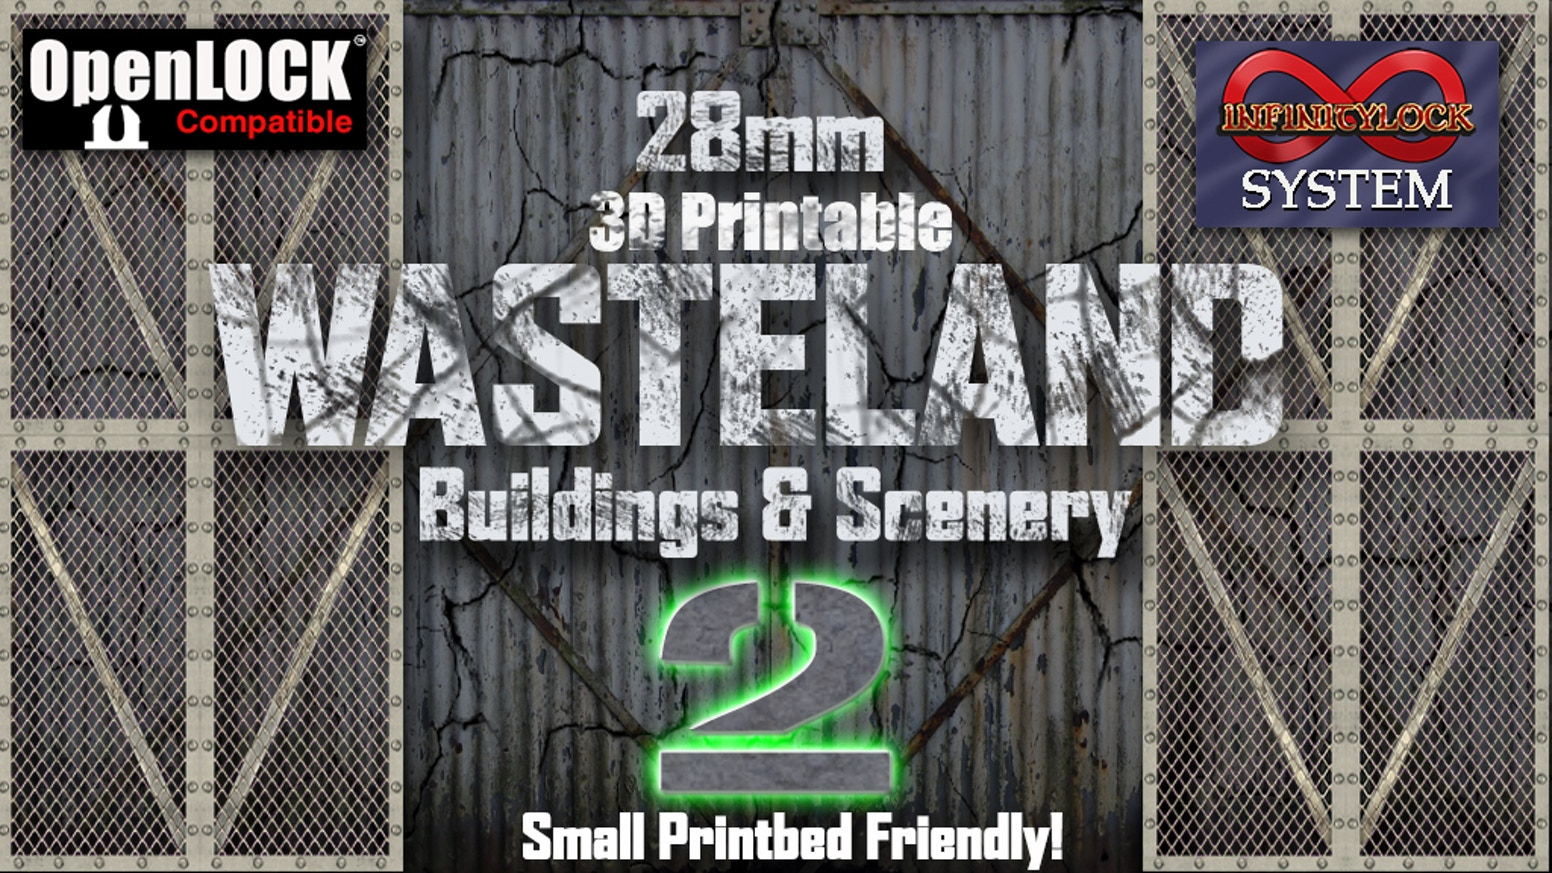 28mm 3D Printable Wasteland #2 Buildings & Scenery - STL - OpenLOCK - Infinitylock